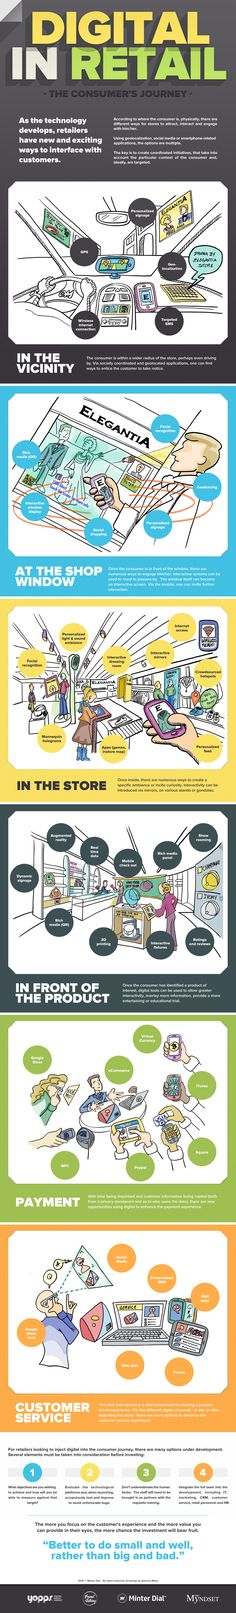 Digital and Retail Infographic